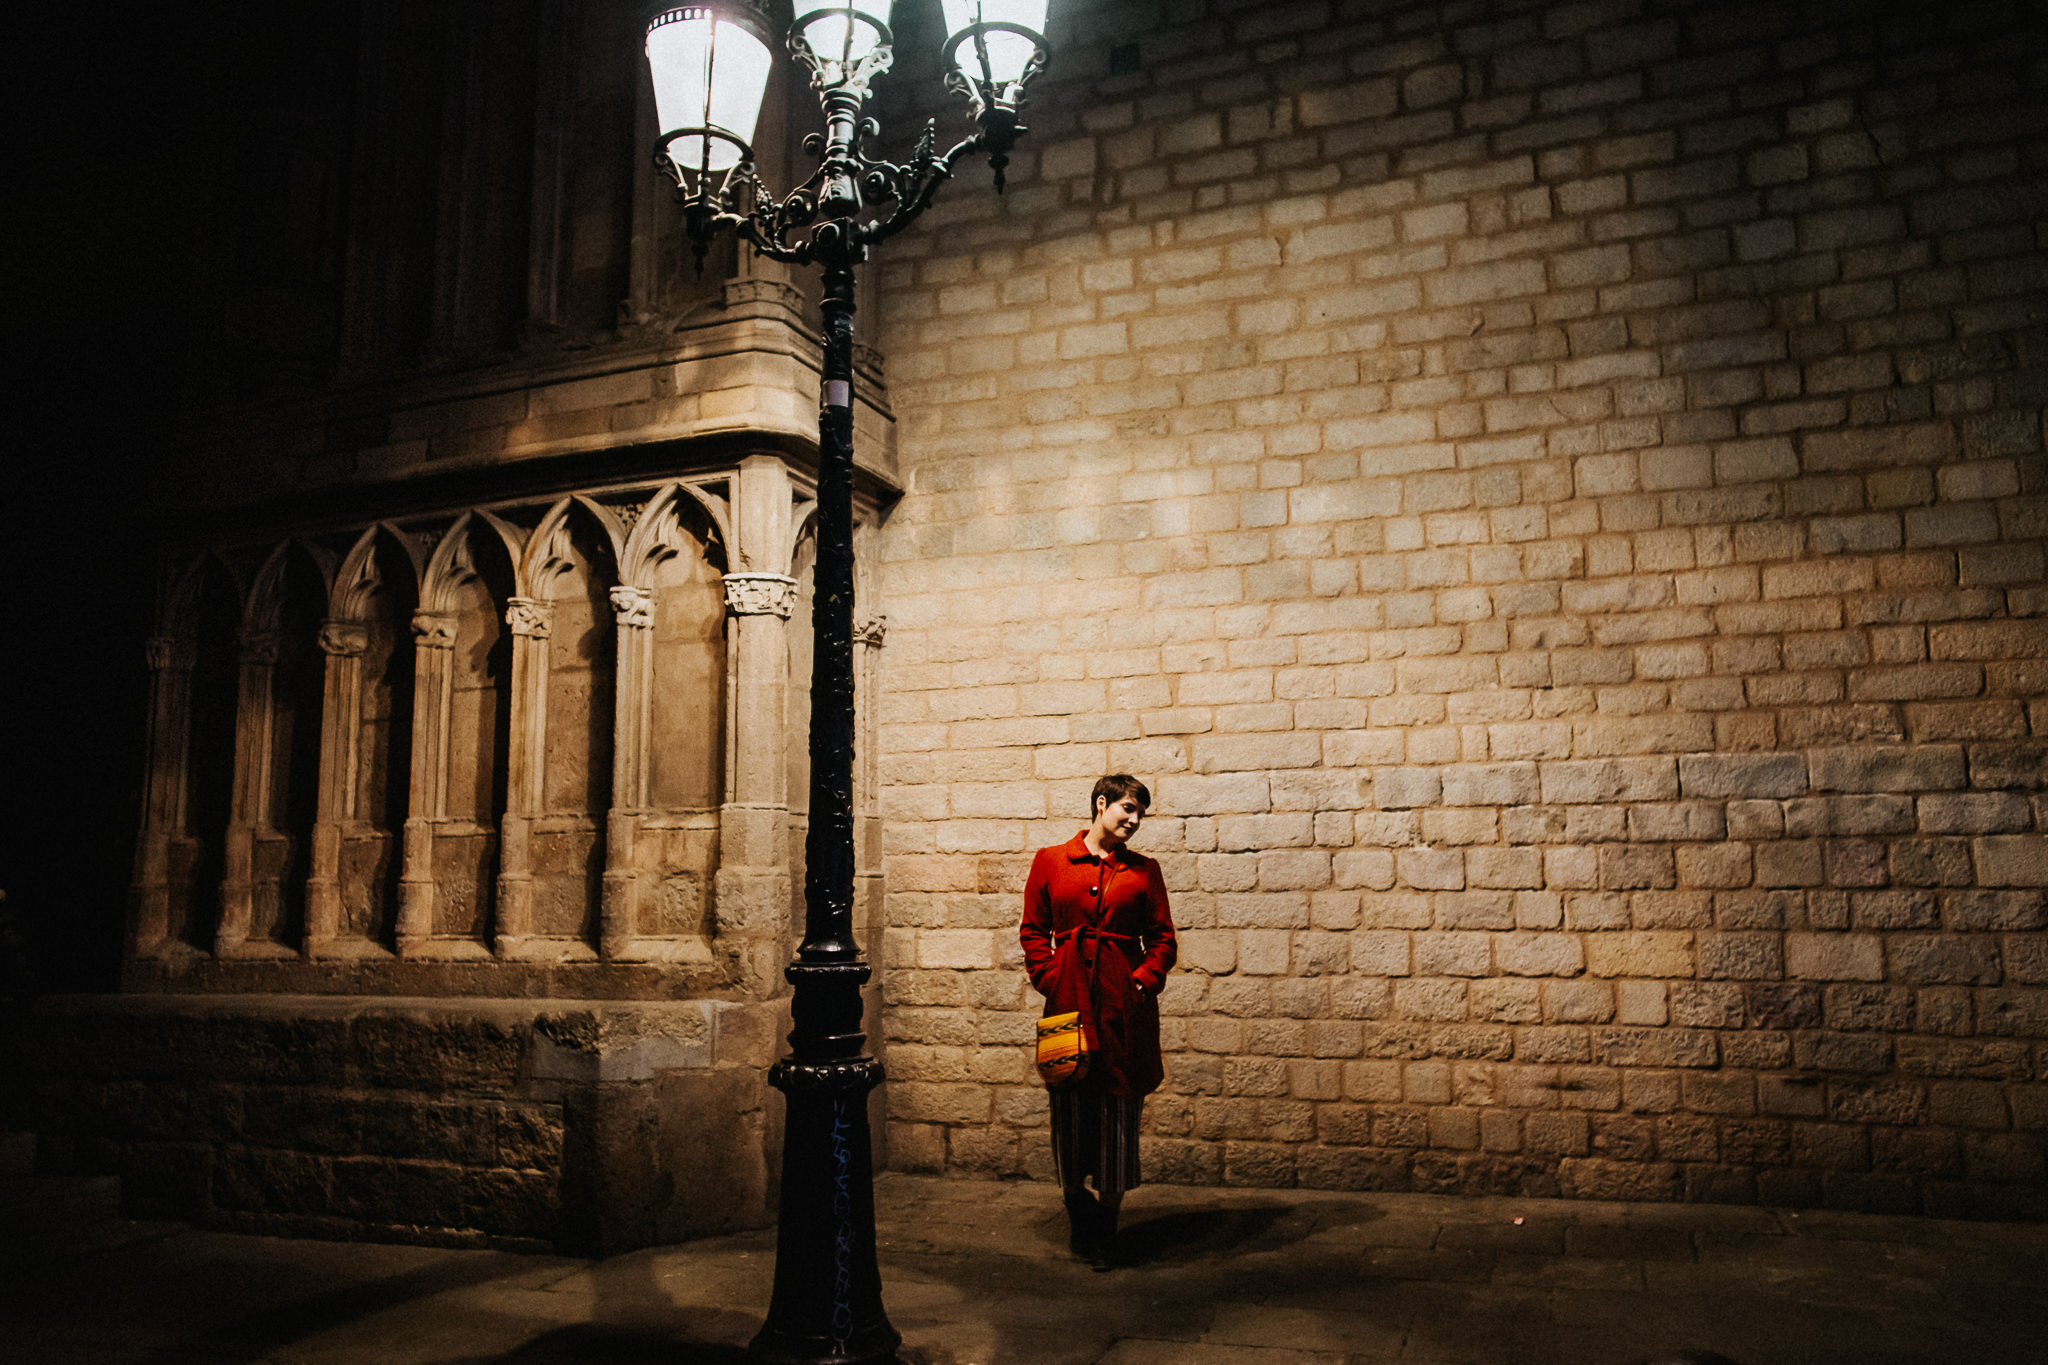 Church Cathedral Barcelona street light Katy Weaver